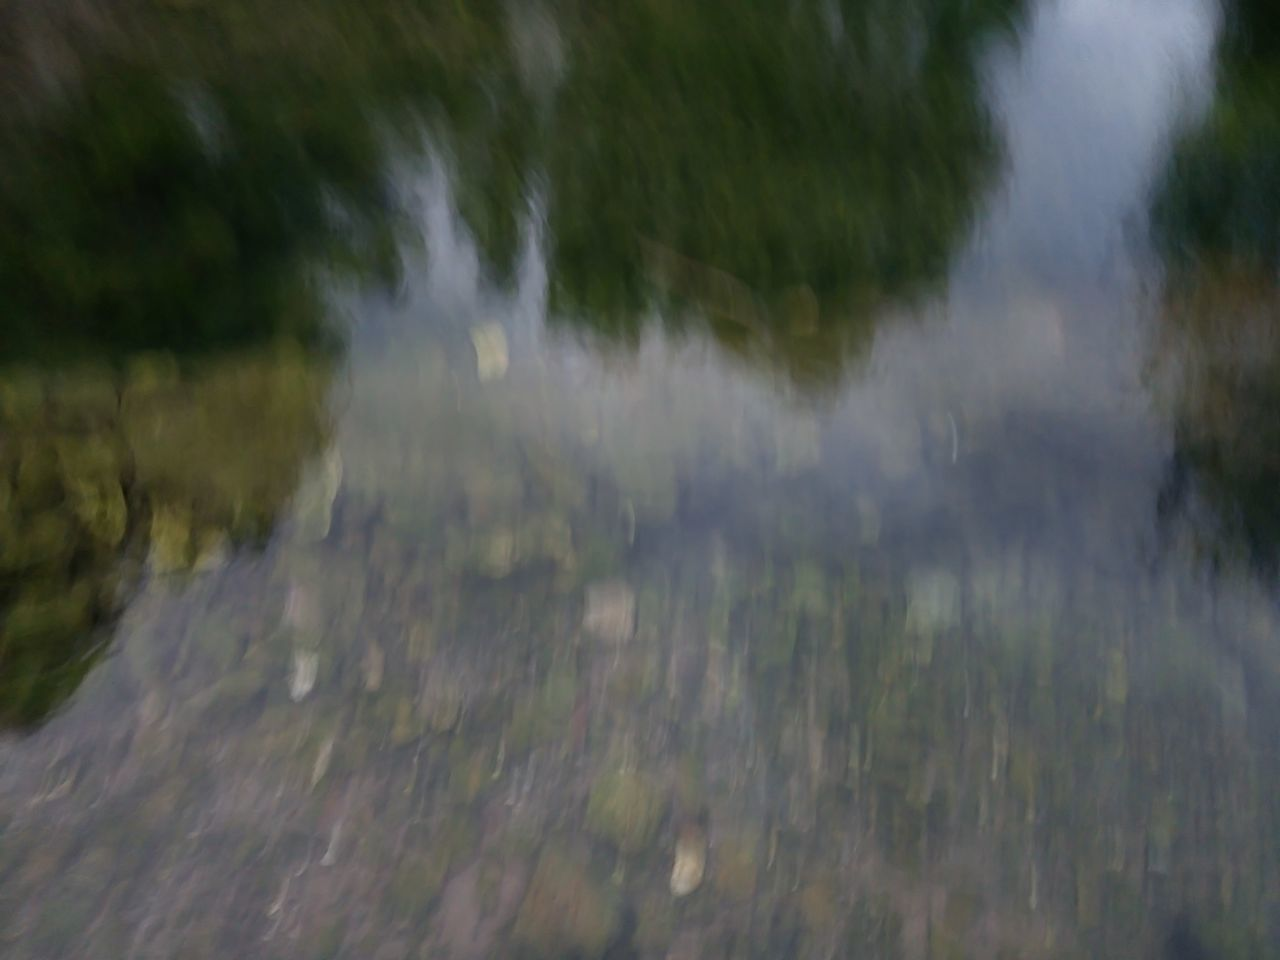 motion, water, blurred motion, long exposure, speed, nature, day, no people, waterfall, outdoors, scenics, grass, beauty in nature, spraying, close-up